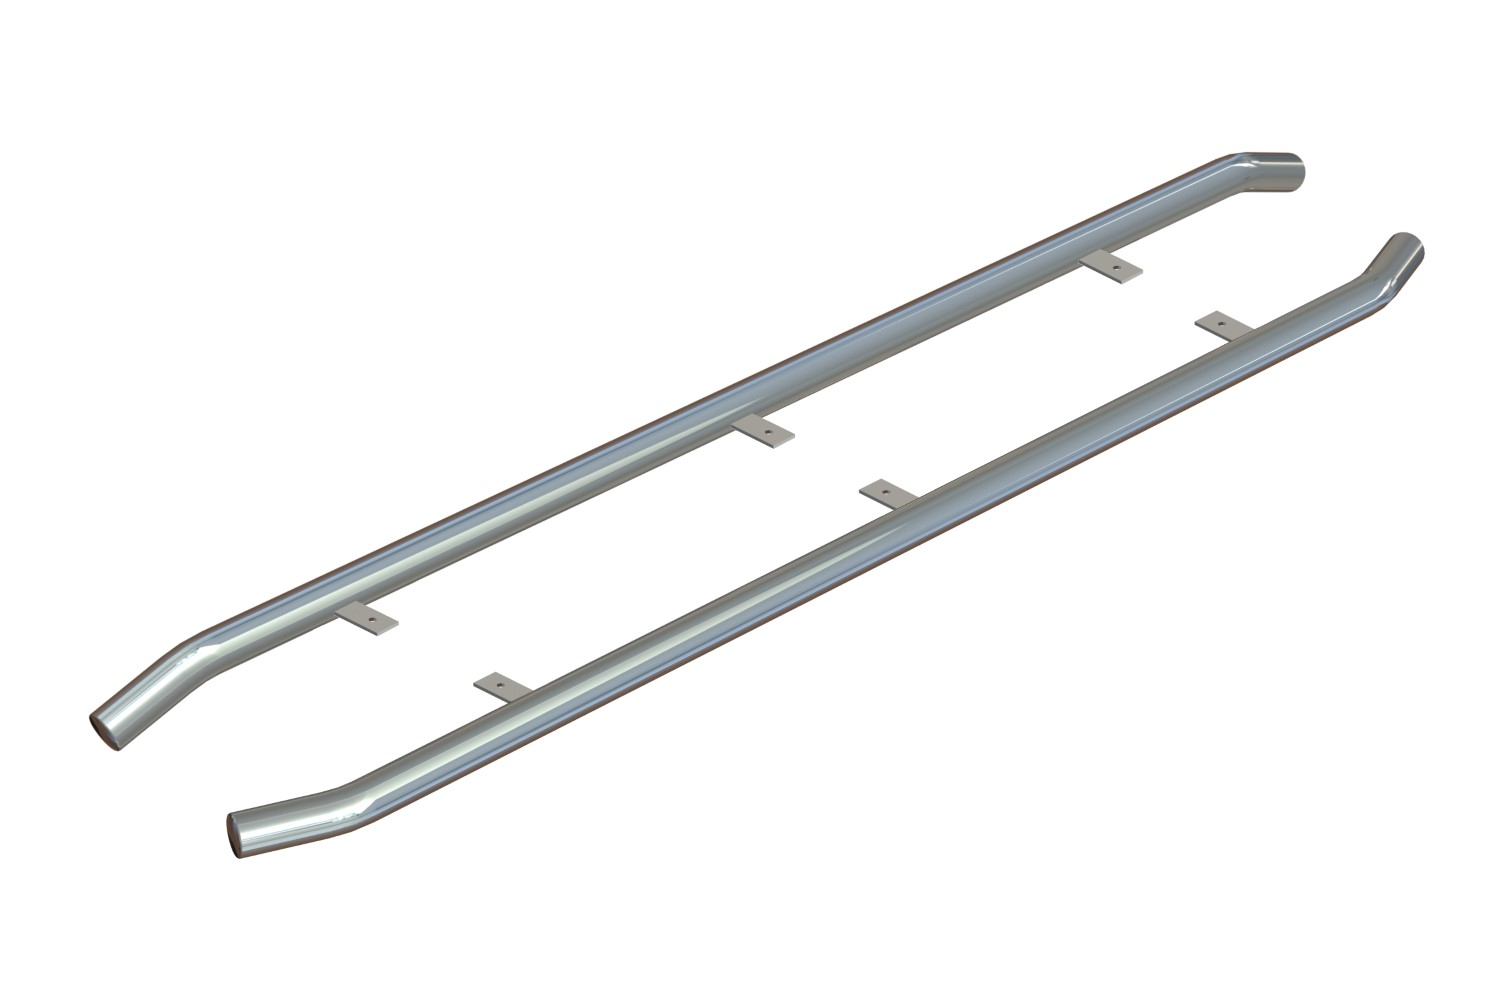 Fiat Ducato III 2006-present side bars stainless steel polished 64 mm (FIA6DUSI)